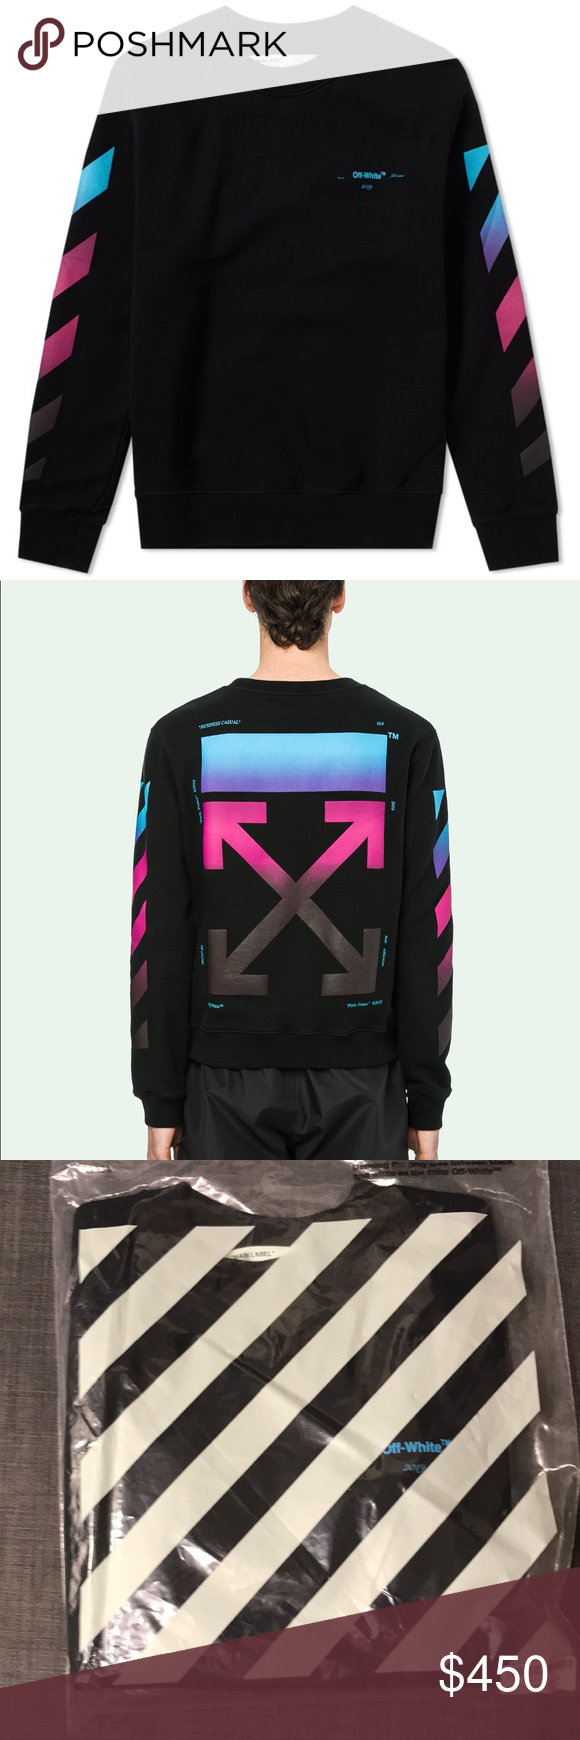 Off White Purple Gradient Sweater Sweaters Sweaters Crewneck Clothes Design [ 1740 x 580 Pixel ]